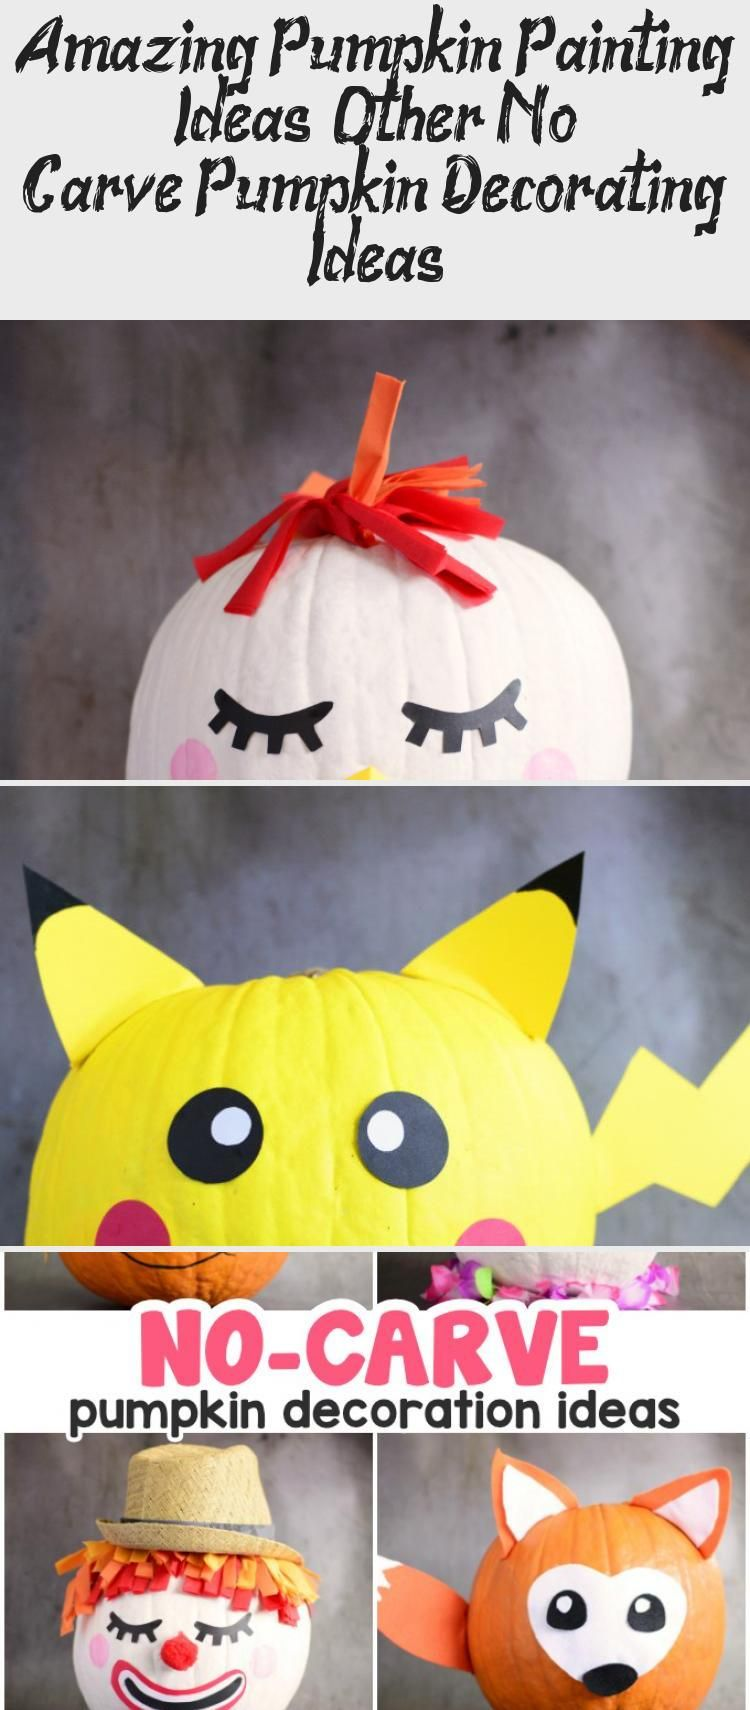 Amazing Pumpkin Painting Ideas & Other No Carve Pumpkin Decorating Ideas #Pumpkinpaintingideas #Bathroompaintingideas #Cutepaintingideas #paintingideasPeople #paintingideasInspiration #pumpkinpaintingideas